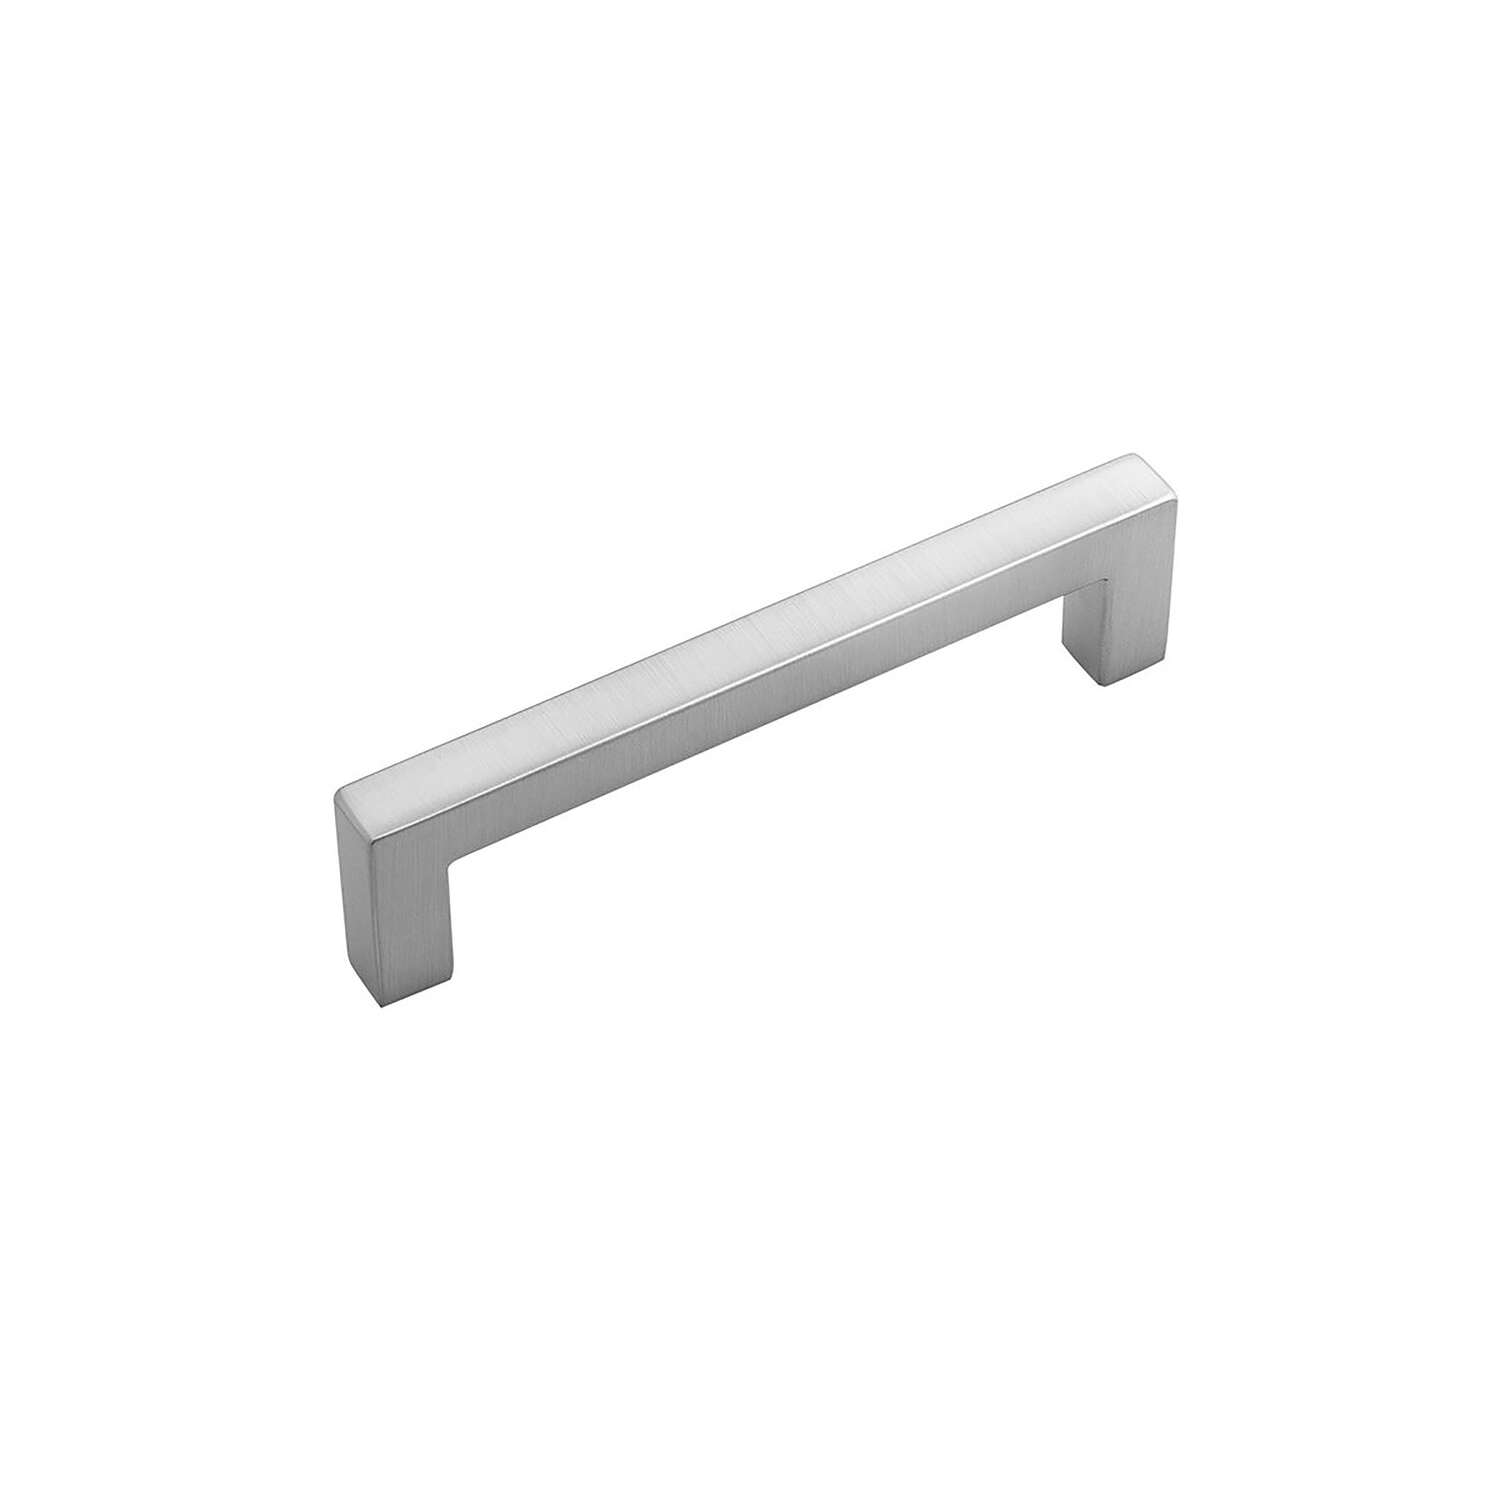 Hickory Hardware  Skylight  Contemporary  Bar  Cabinet Pull  3-3/4 in. Stainless Steel  Silver  1 pk